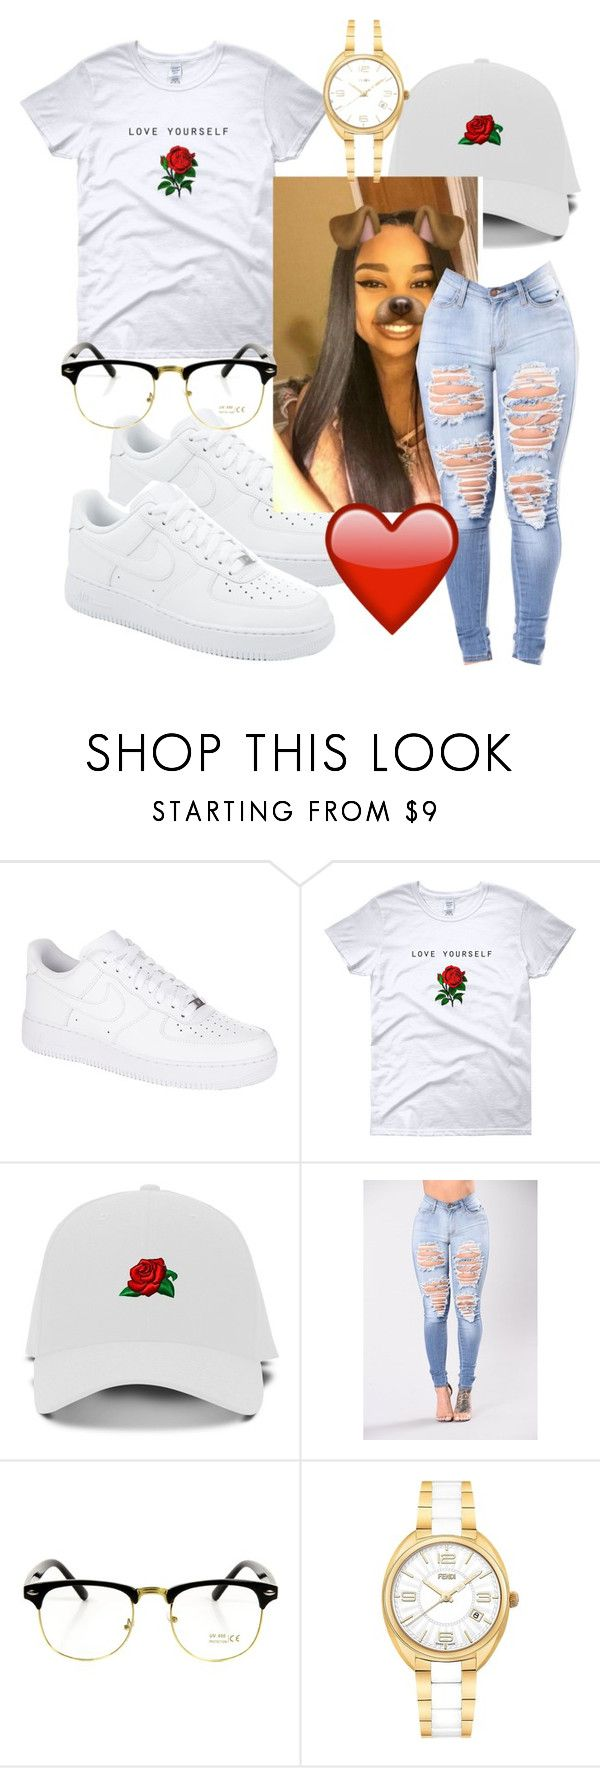 """""""Im the One~Dj Khaled, Quavo, Chance the Rapper, Lil Wayne Justin Beiber"""" by qveenpolyvore ❤ liked on Polyvore featuring NIKE and Fendi"""